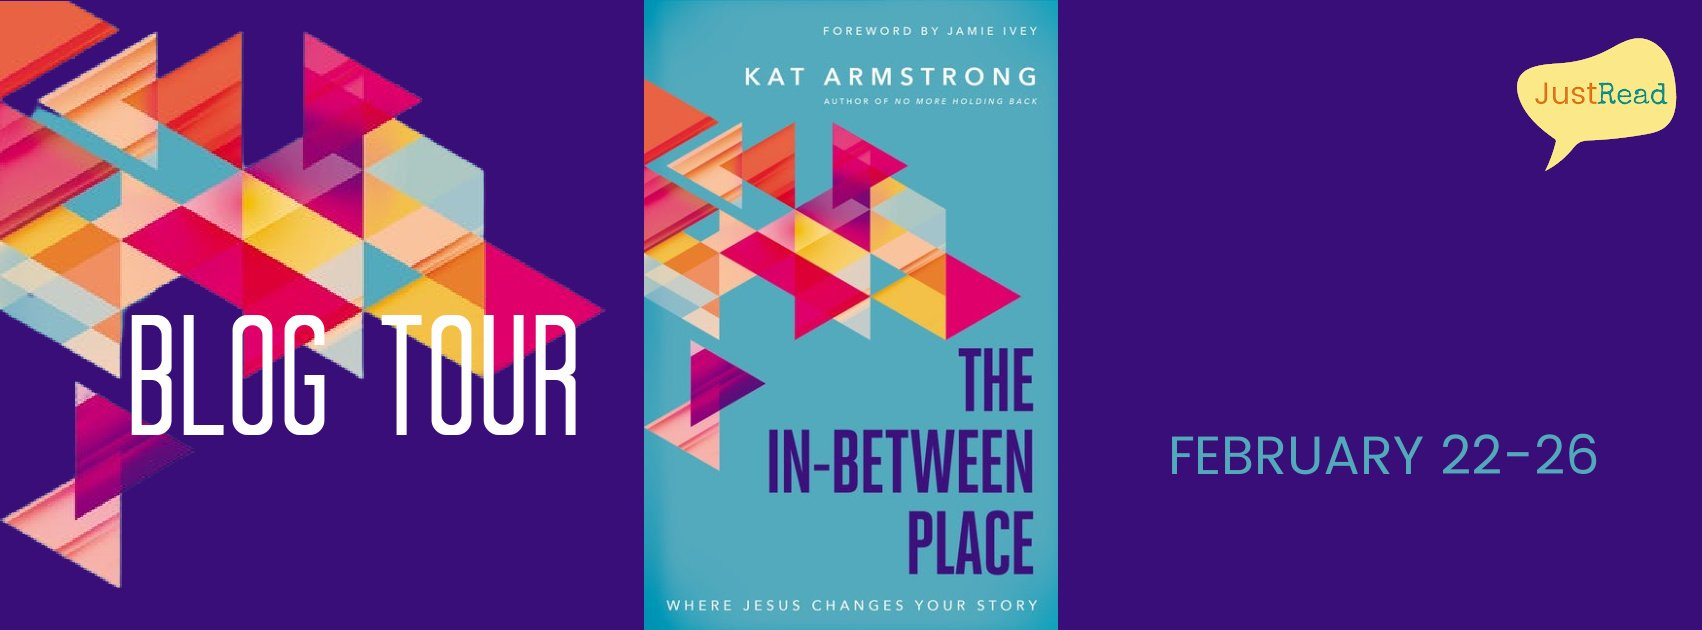 The In-Between Place JustRead Blog Tour